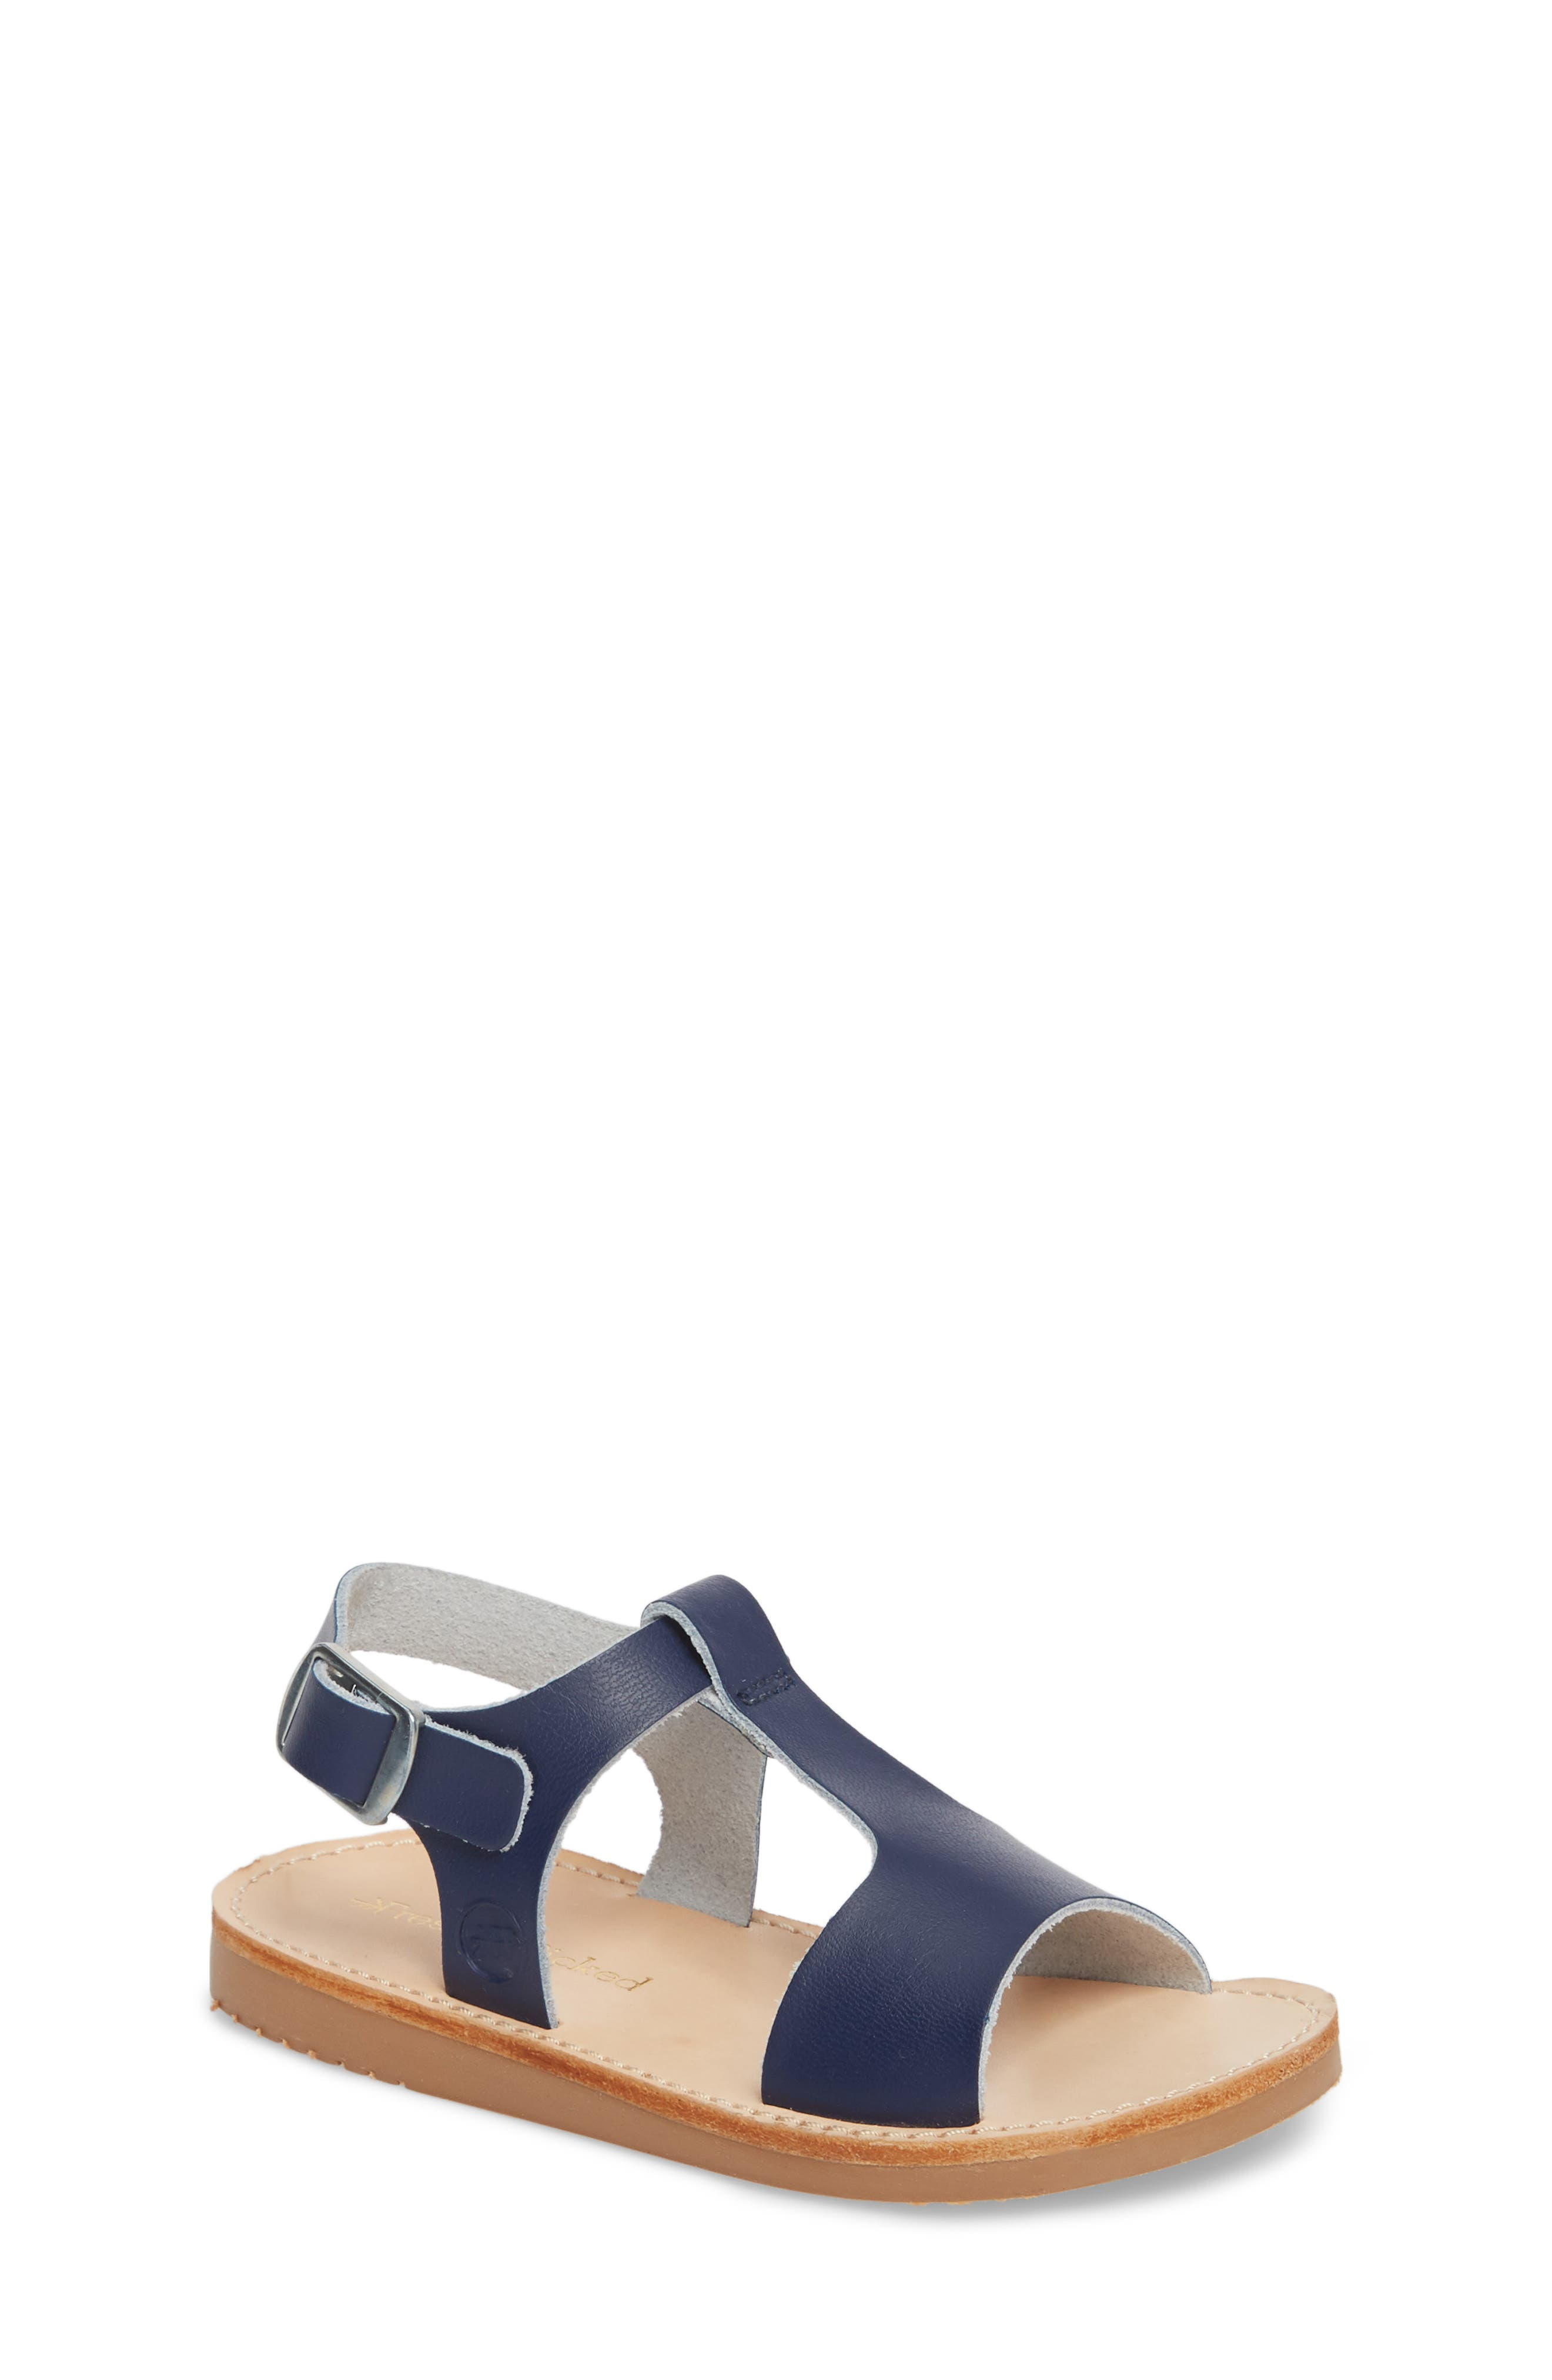 Freshly Picked Malibu Water Resistant Sandal (Baby, Walker & Toddler)